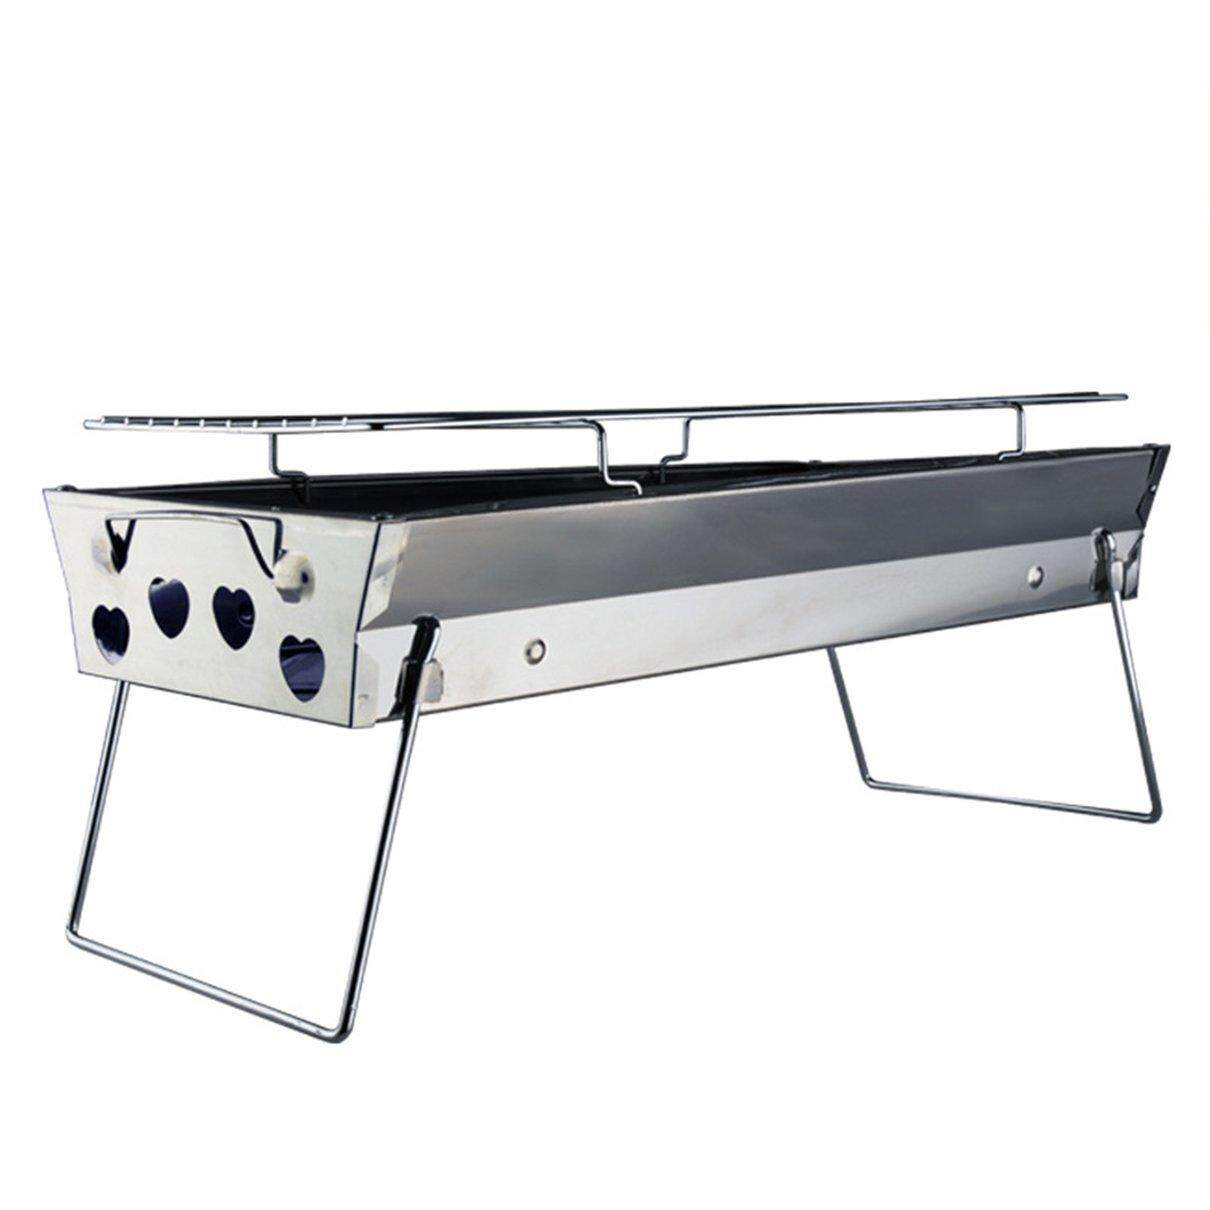 Hot Sale Stainless Steel BBQ Grill Folding BBQ Grill Barbecue Charcoal Grilling Tool